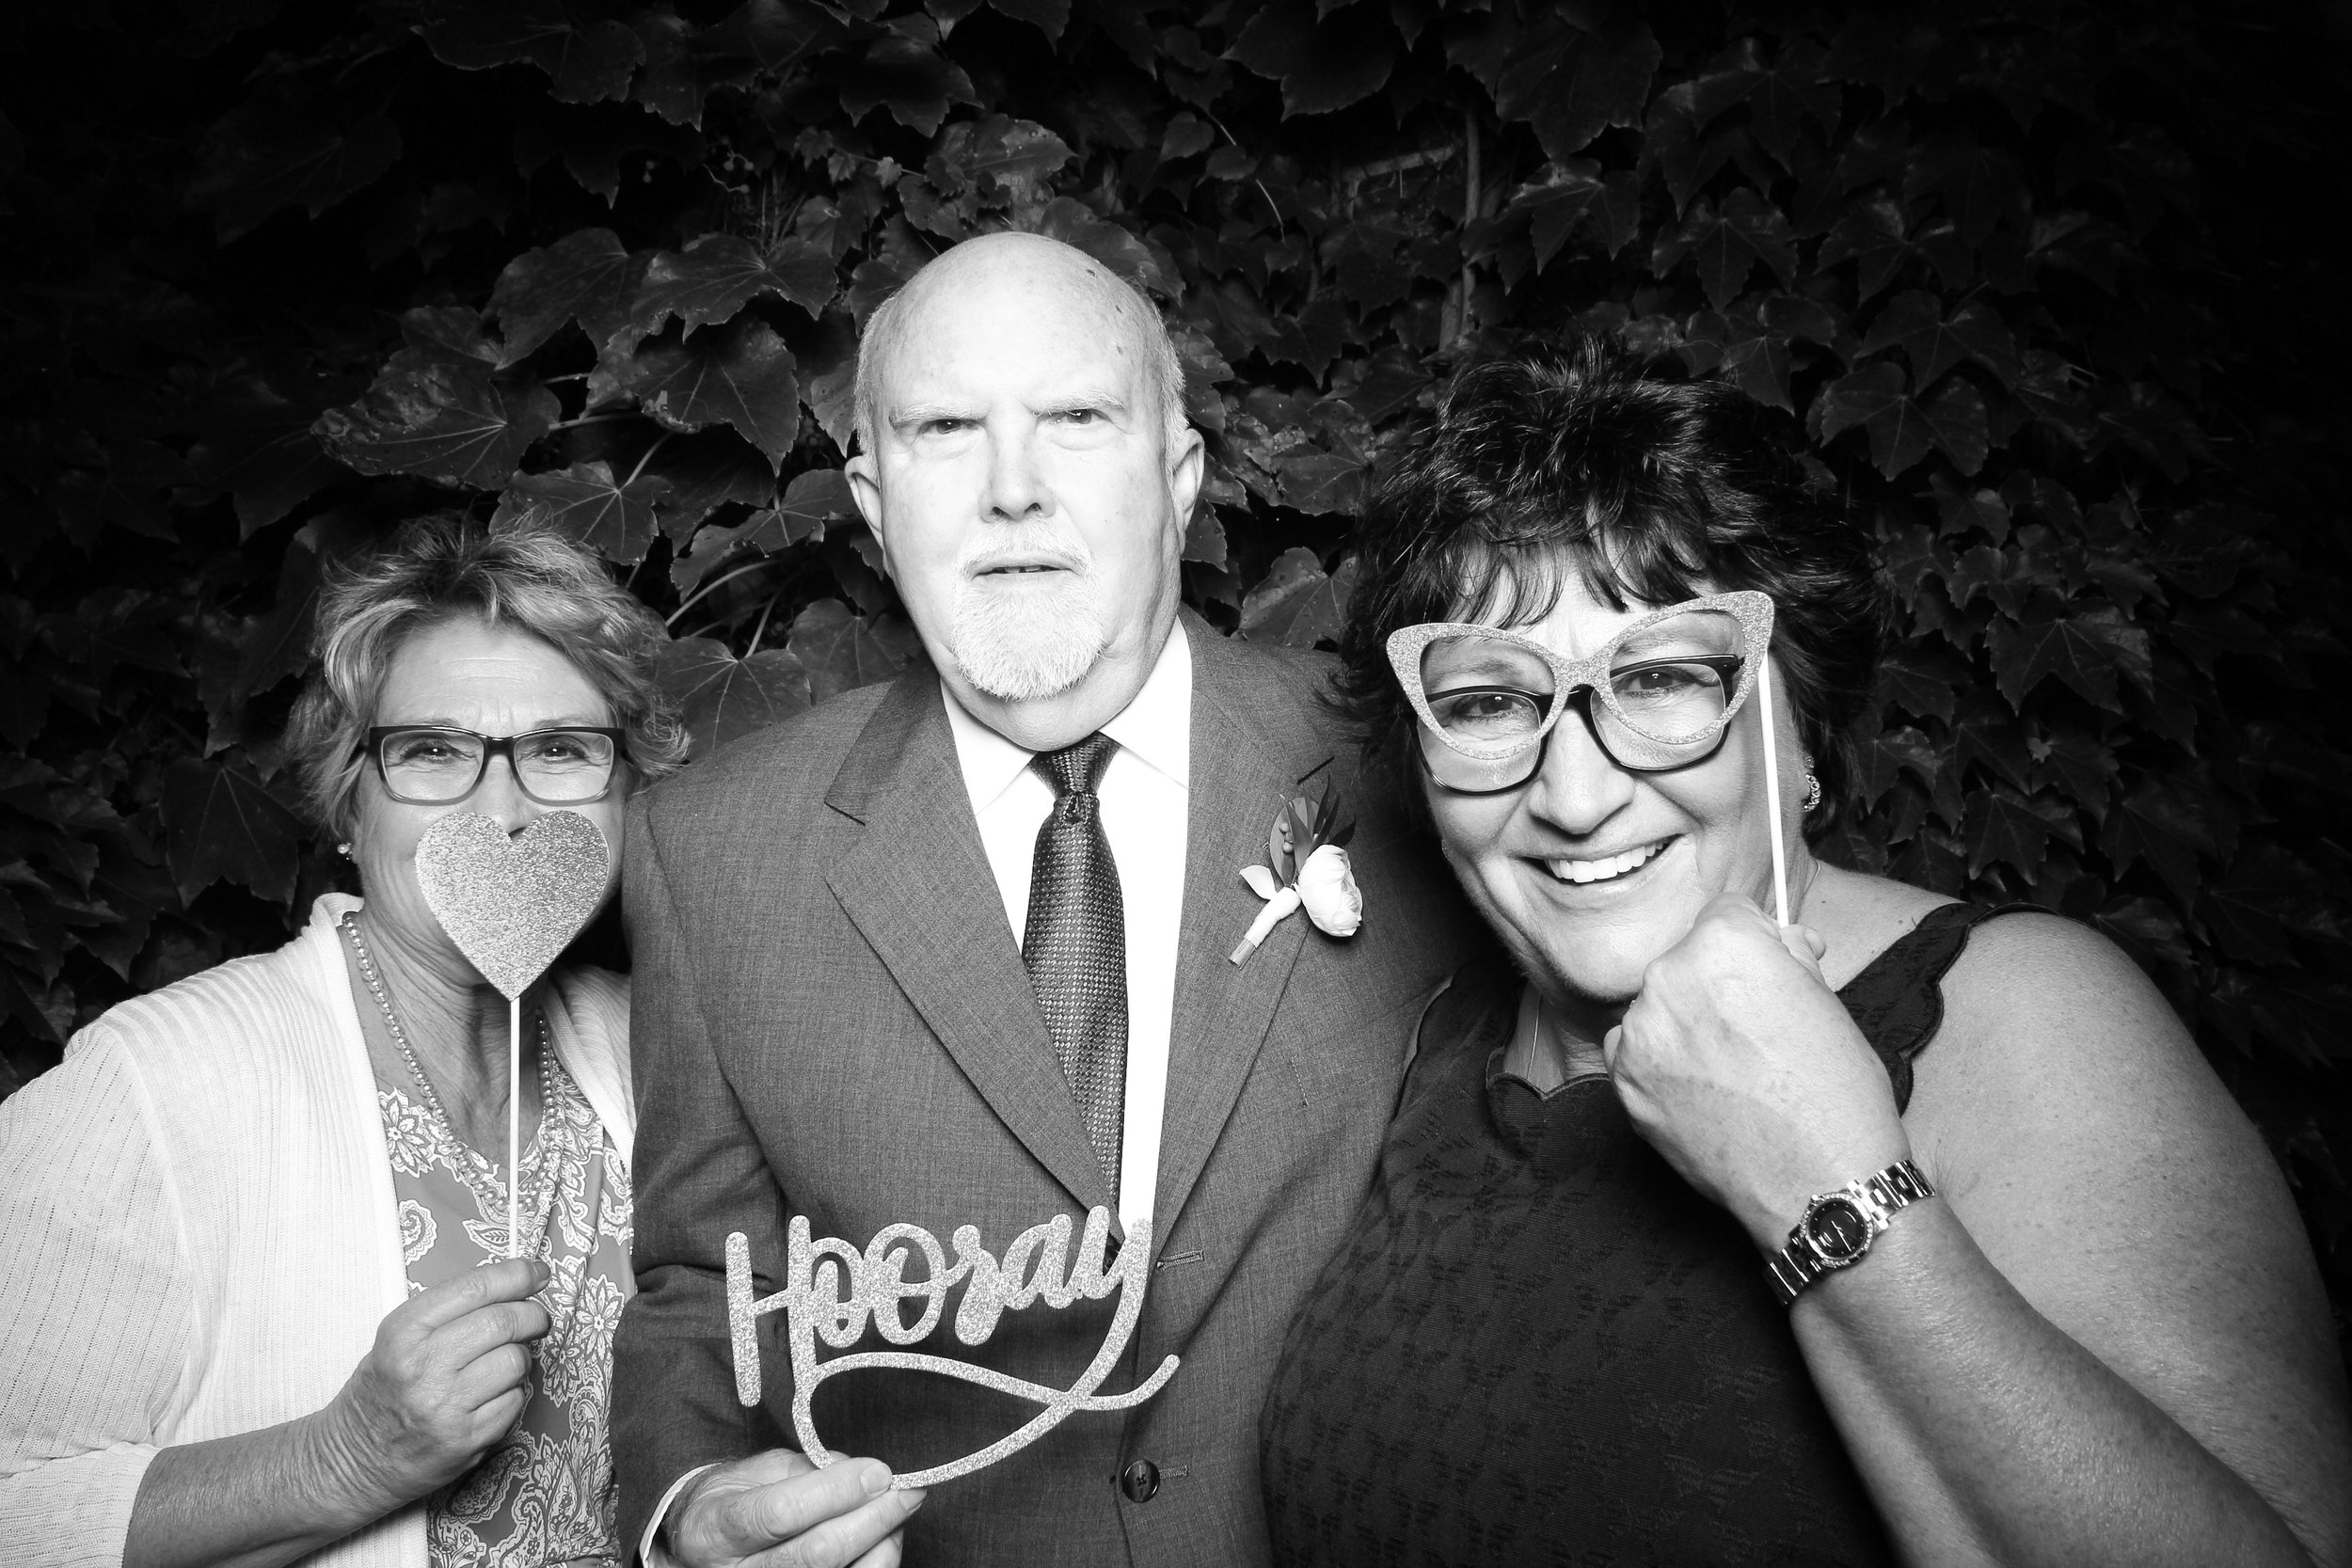 Chicago_Vintage_Wedding_Photobooth_Firehouse_09.jpg